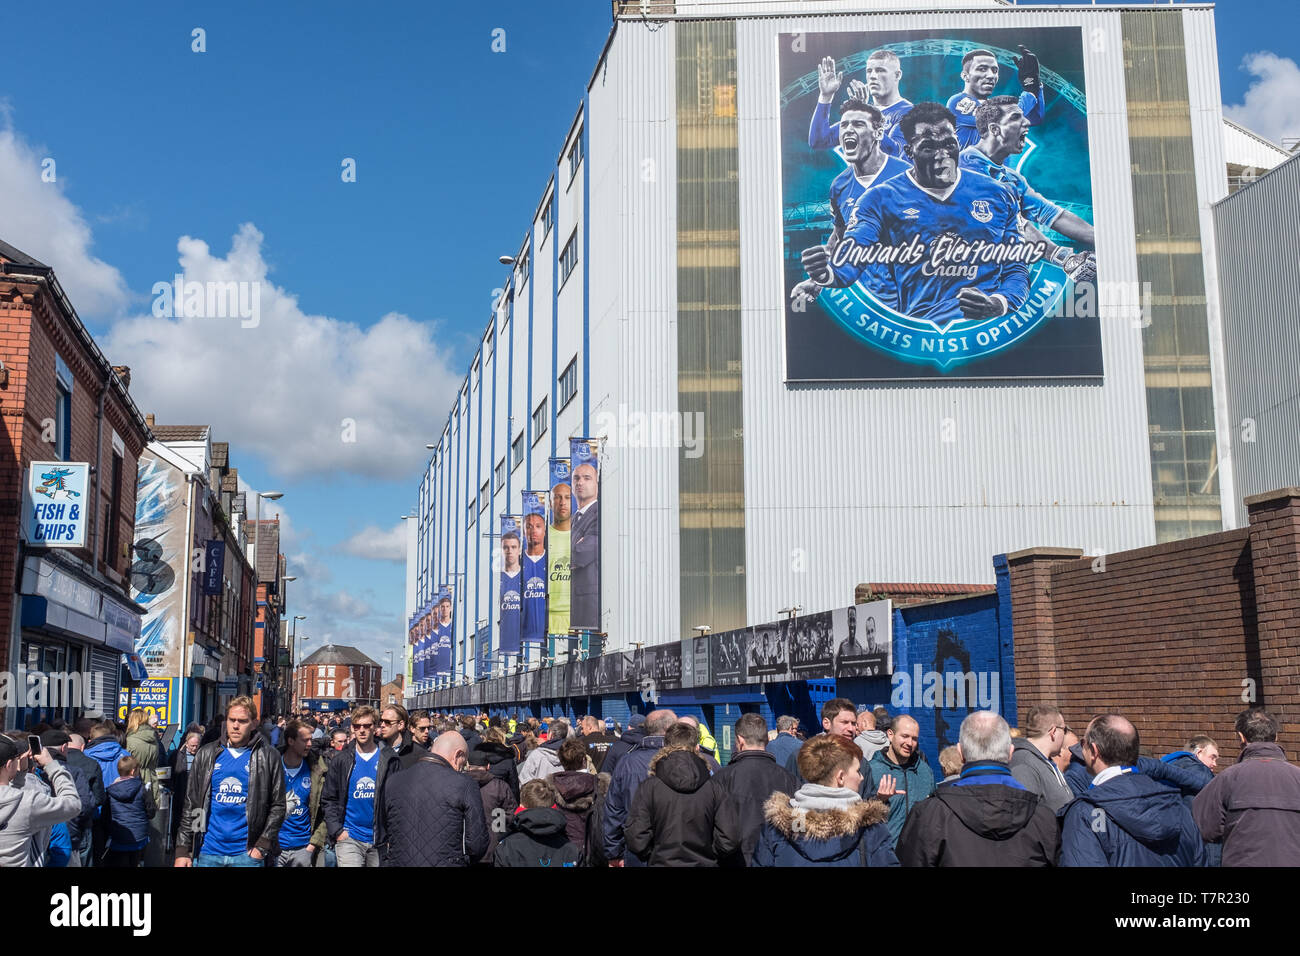 Everton, Liverpool, UK, April, 17, 2016: Crowds supporters gather at Everton Football Club for a premiership game versus Southampton, flags and scarfs  in the Everton colours can be seen, against a bright blue sky Stock Photo